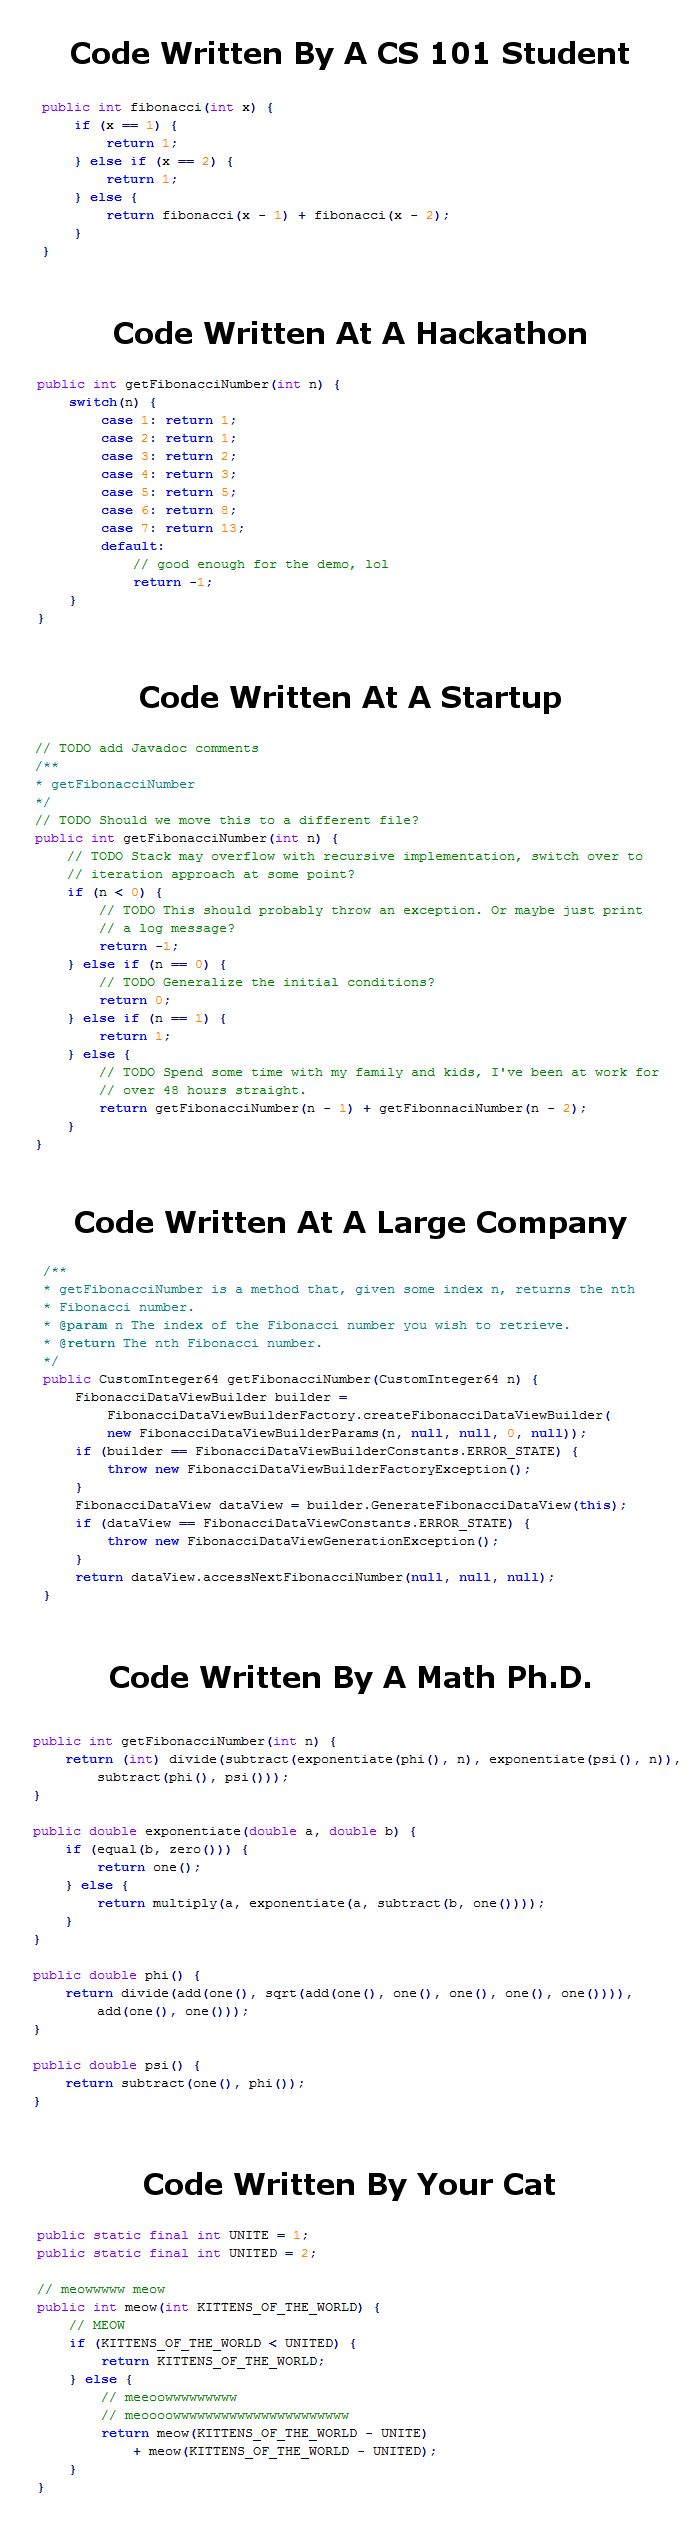 Willa's World: The Six Most Common Species Of Code | STEM Humor